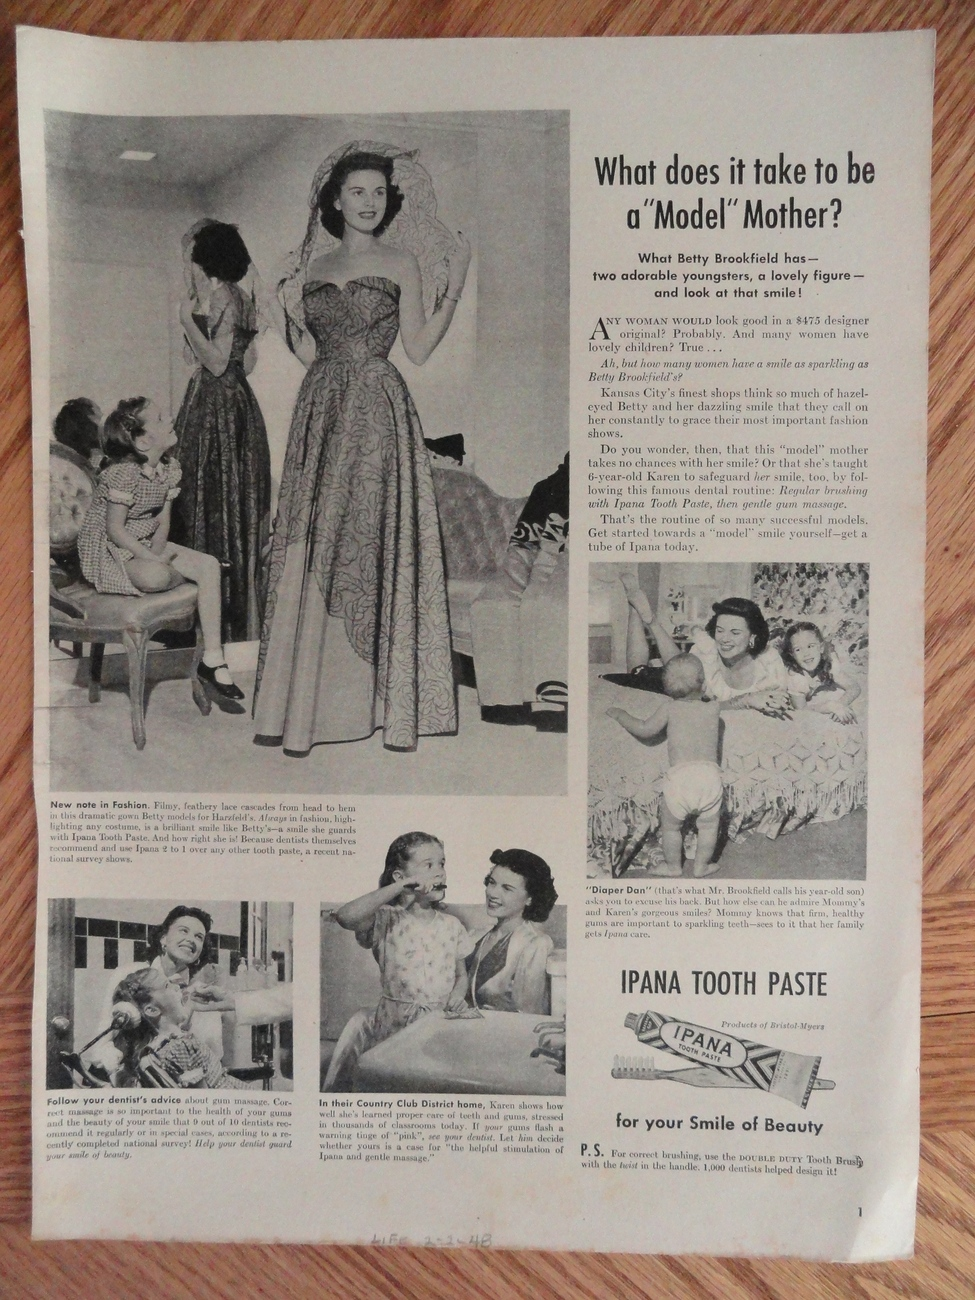 Ipana Tooth Paste (Model Mother?) 1948 magazine print Ad.   Bonanza